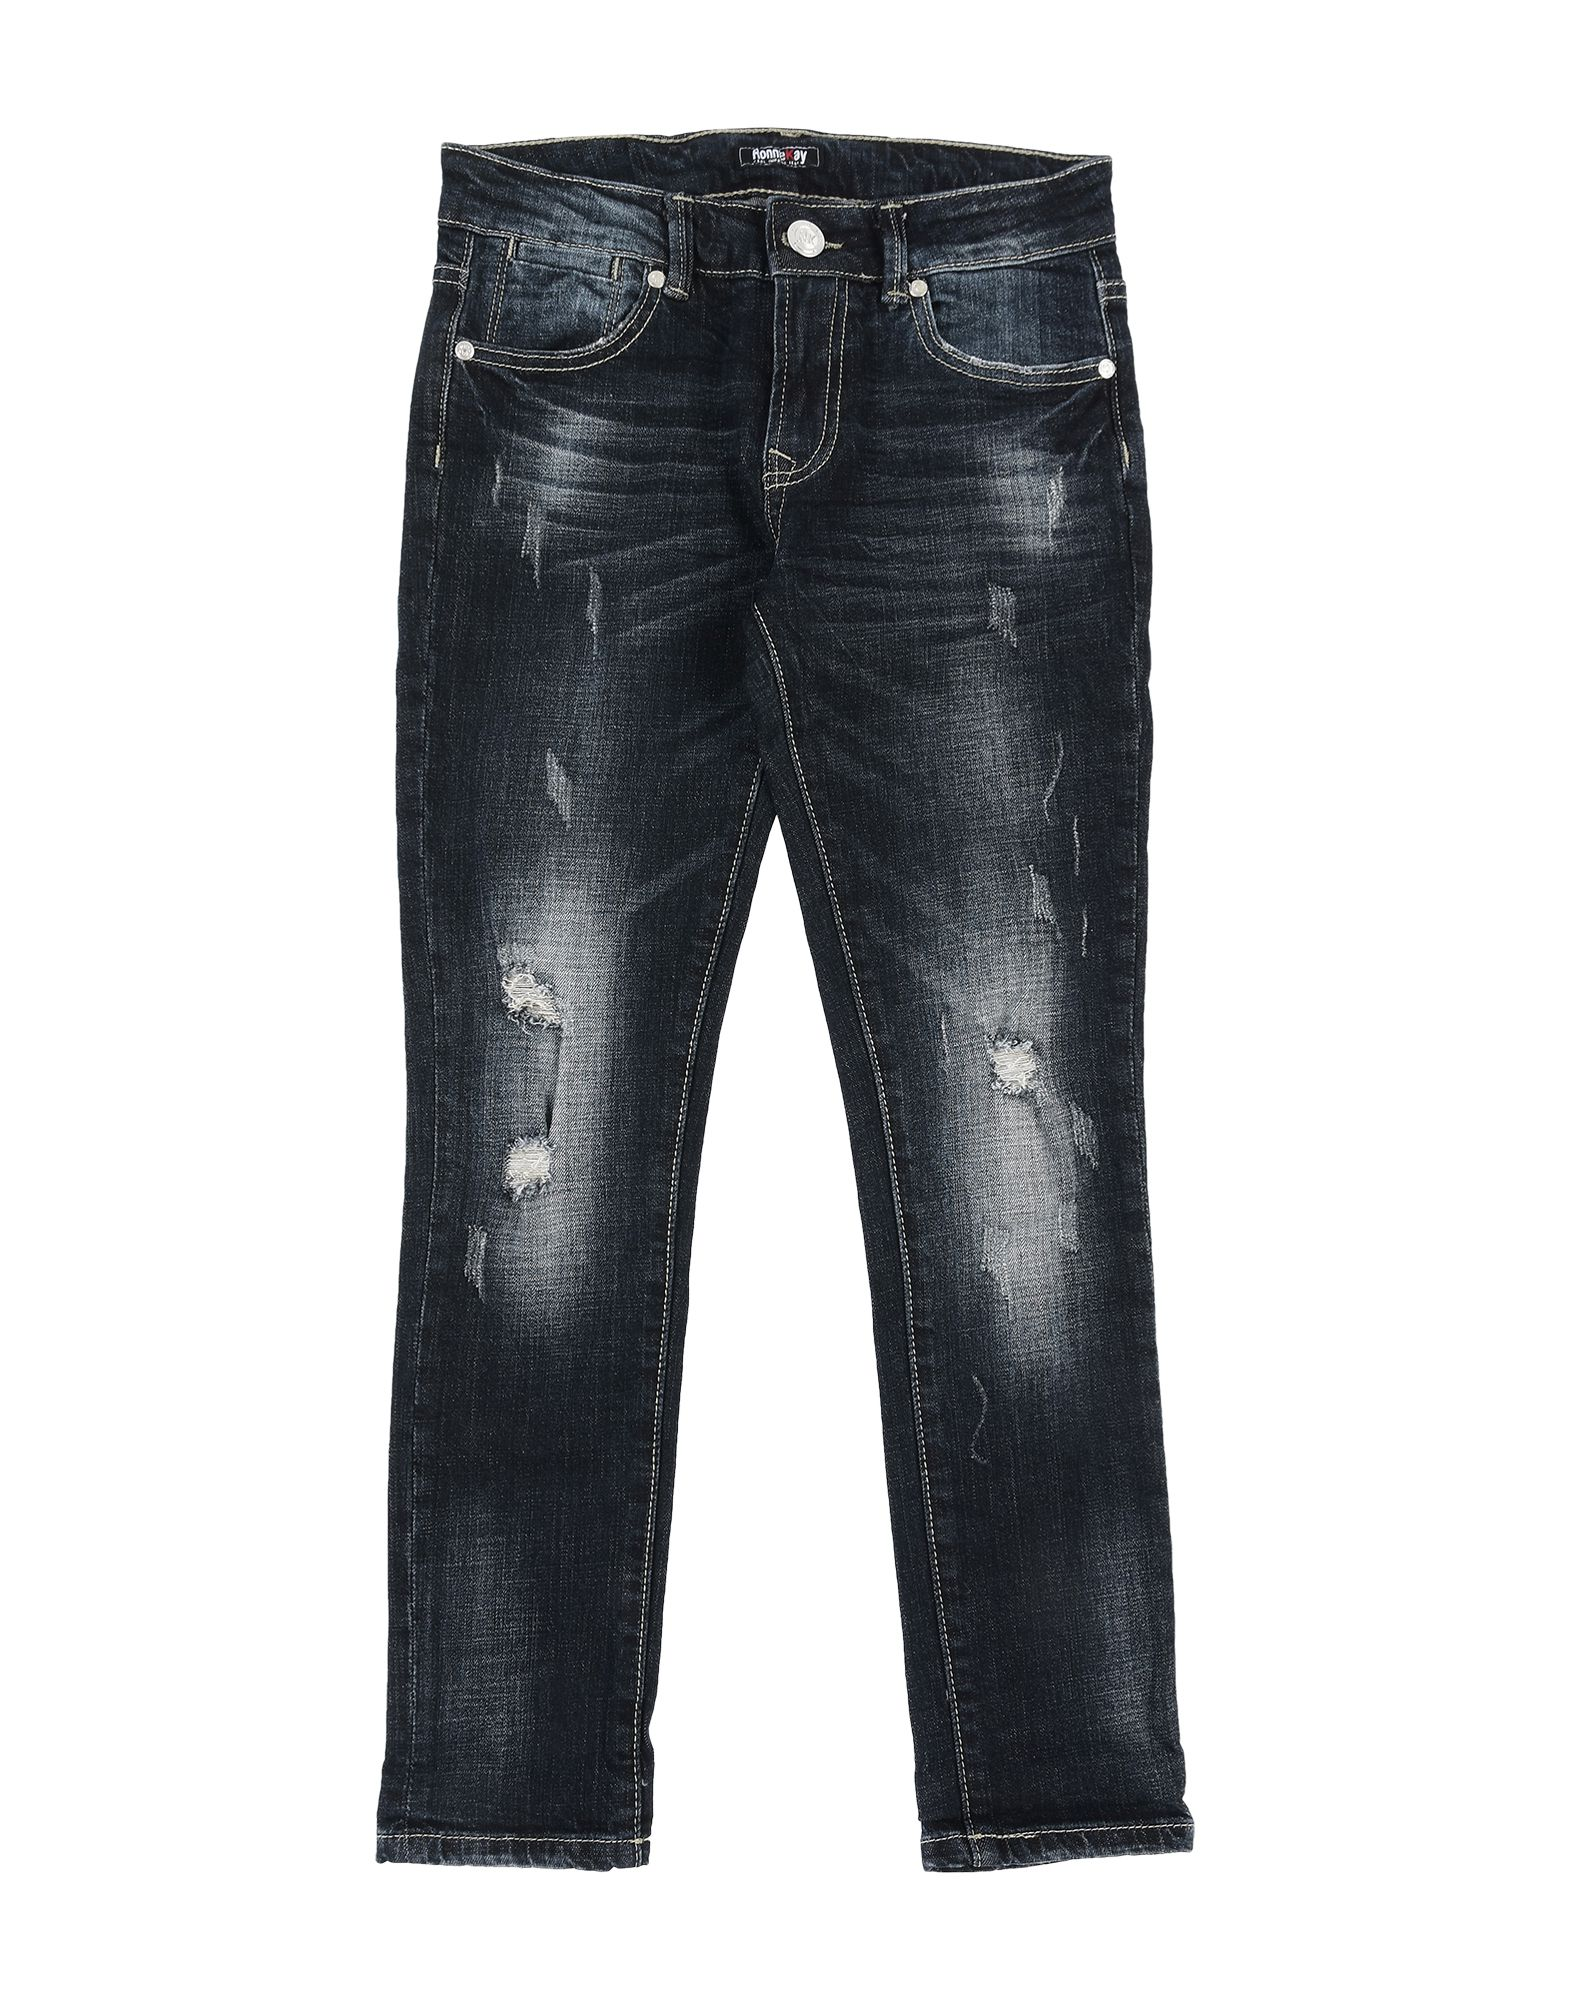 RONNIE KAY Denim pants - Item 42749861